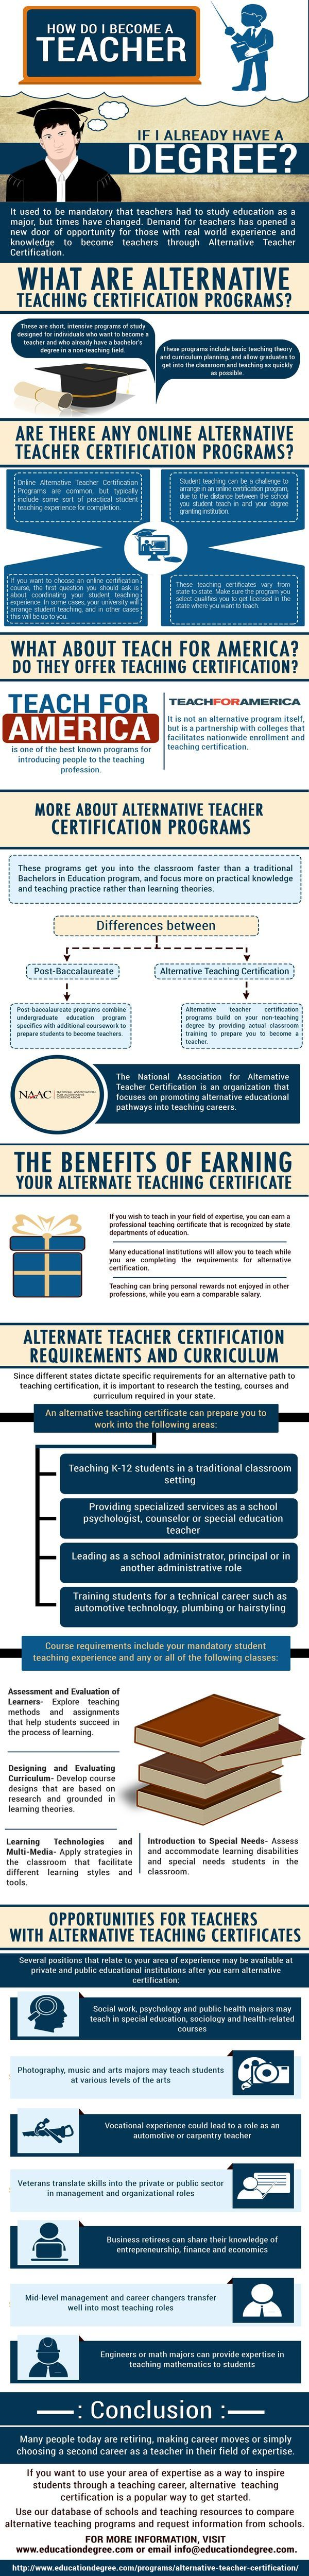 Best 25 teacher certification ideas on pinterest national board infographic on alternative certification and how to become a teacher if you already have a degree xflitez Choice Image